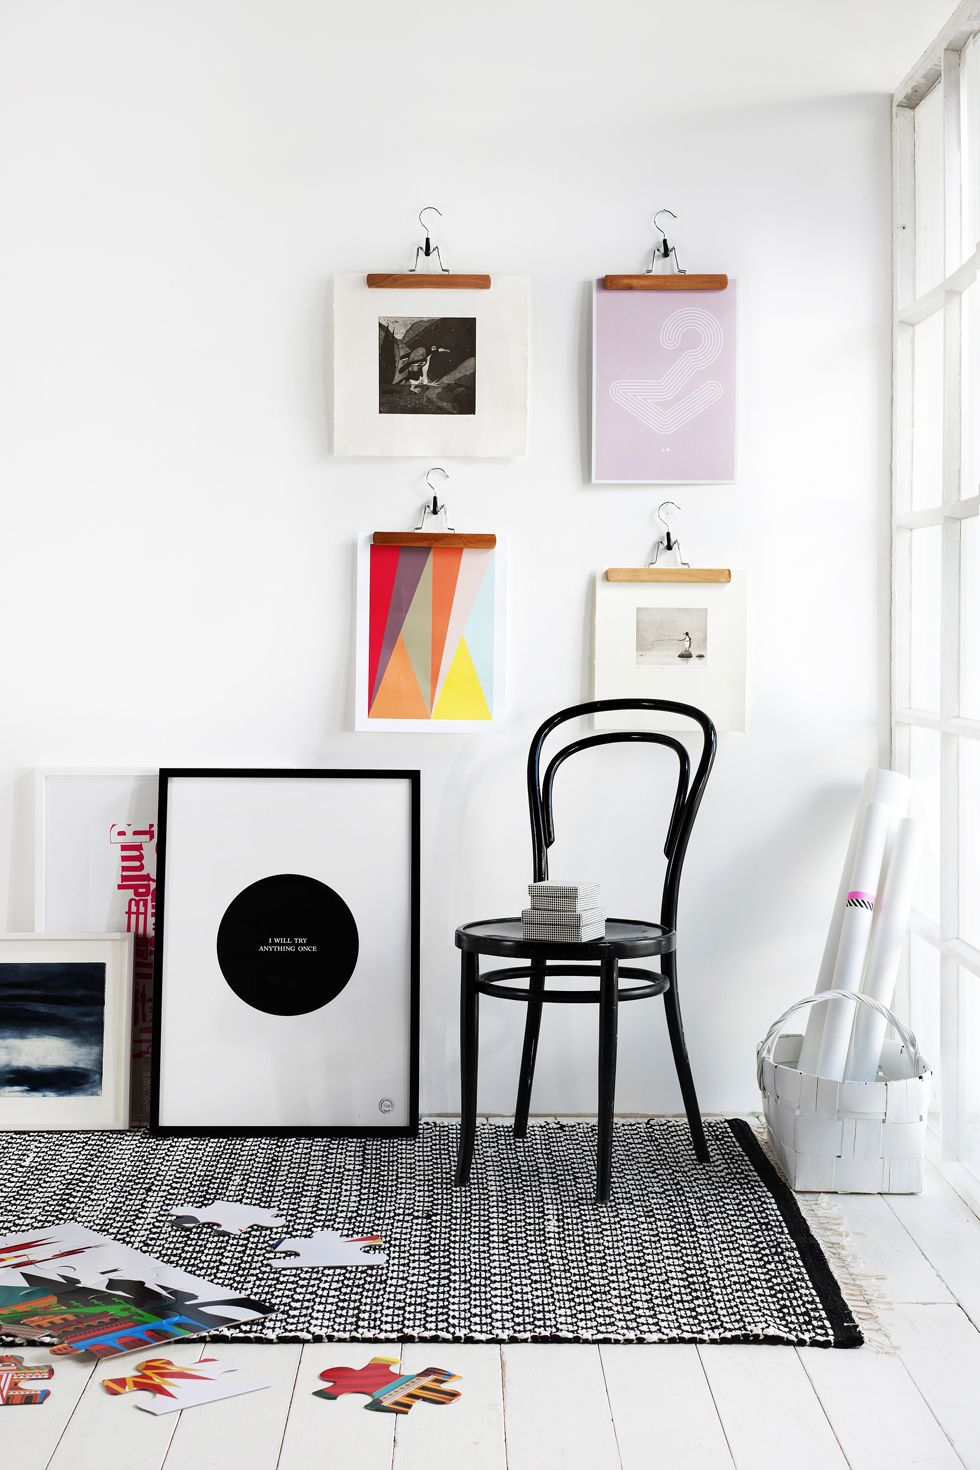 5 ways to display photos on your walls deko diy inspiration und wandgestaltung. Black Bedroom Furniture Sets. Home Design Ideas